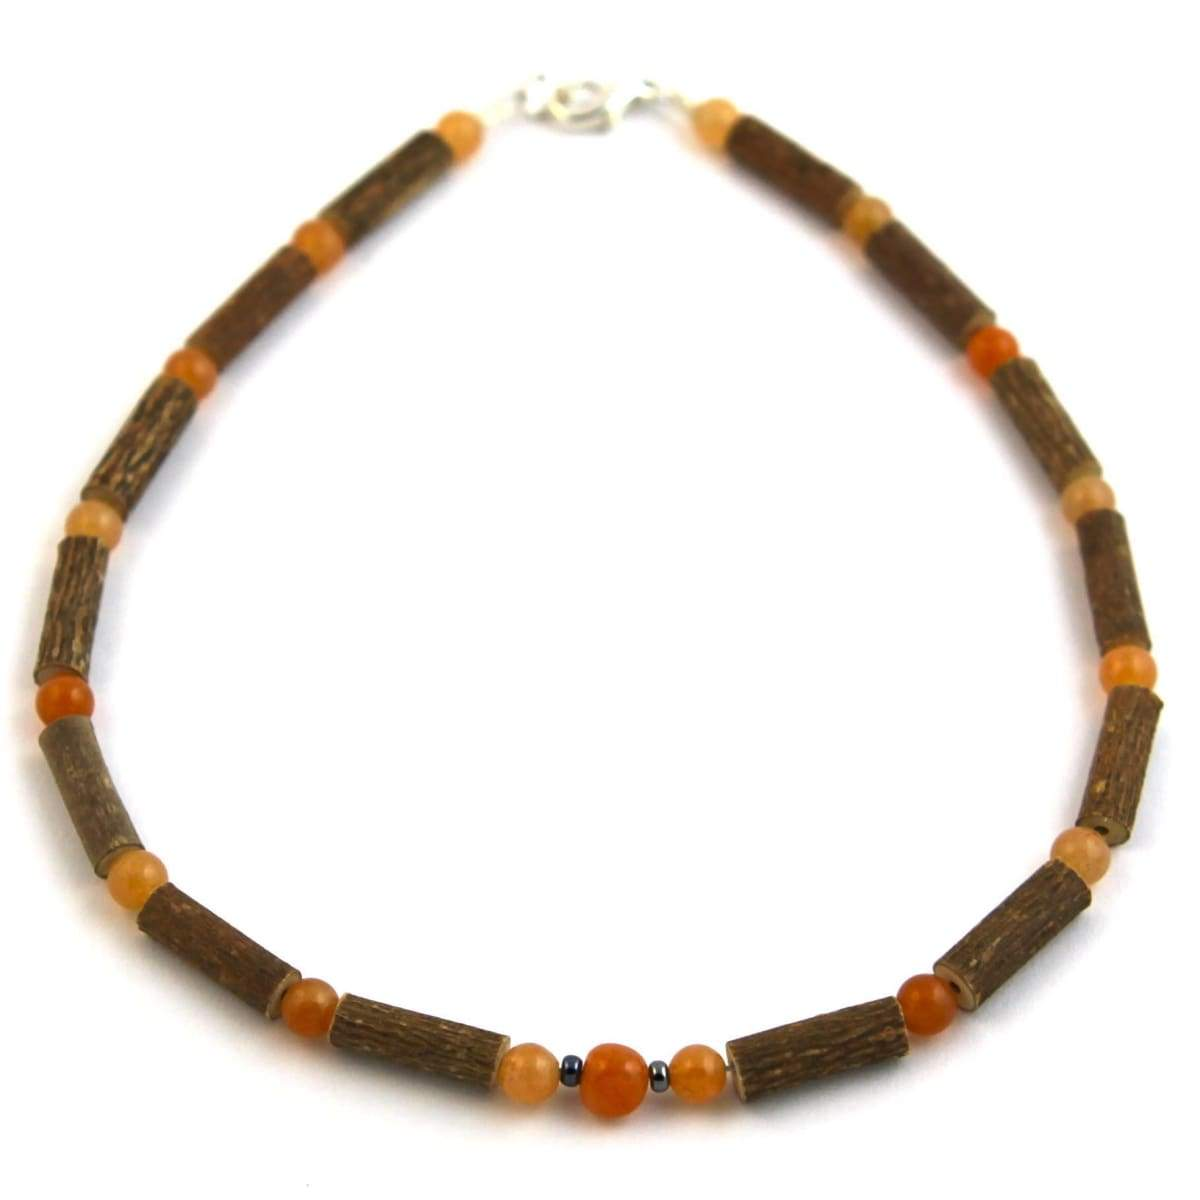 Hazel-Gemstone Orange Aventurine - 11 Necklace - Lobster Claw Clasp - Hazelwood & Gemstone Jewelry